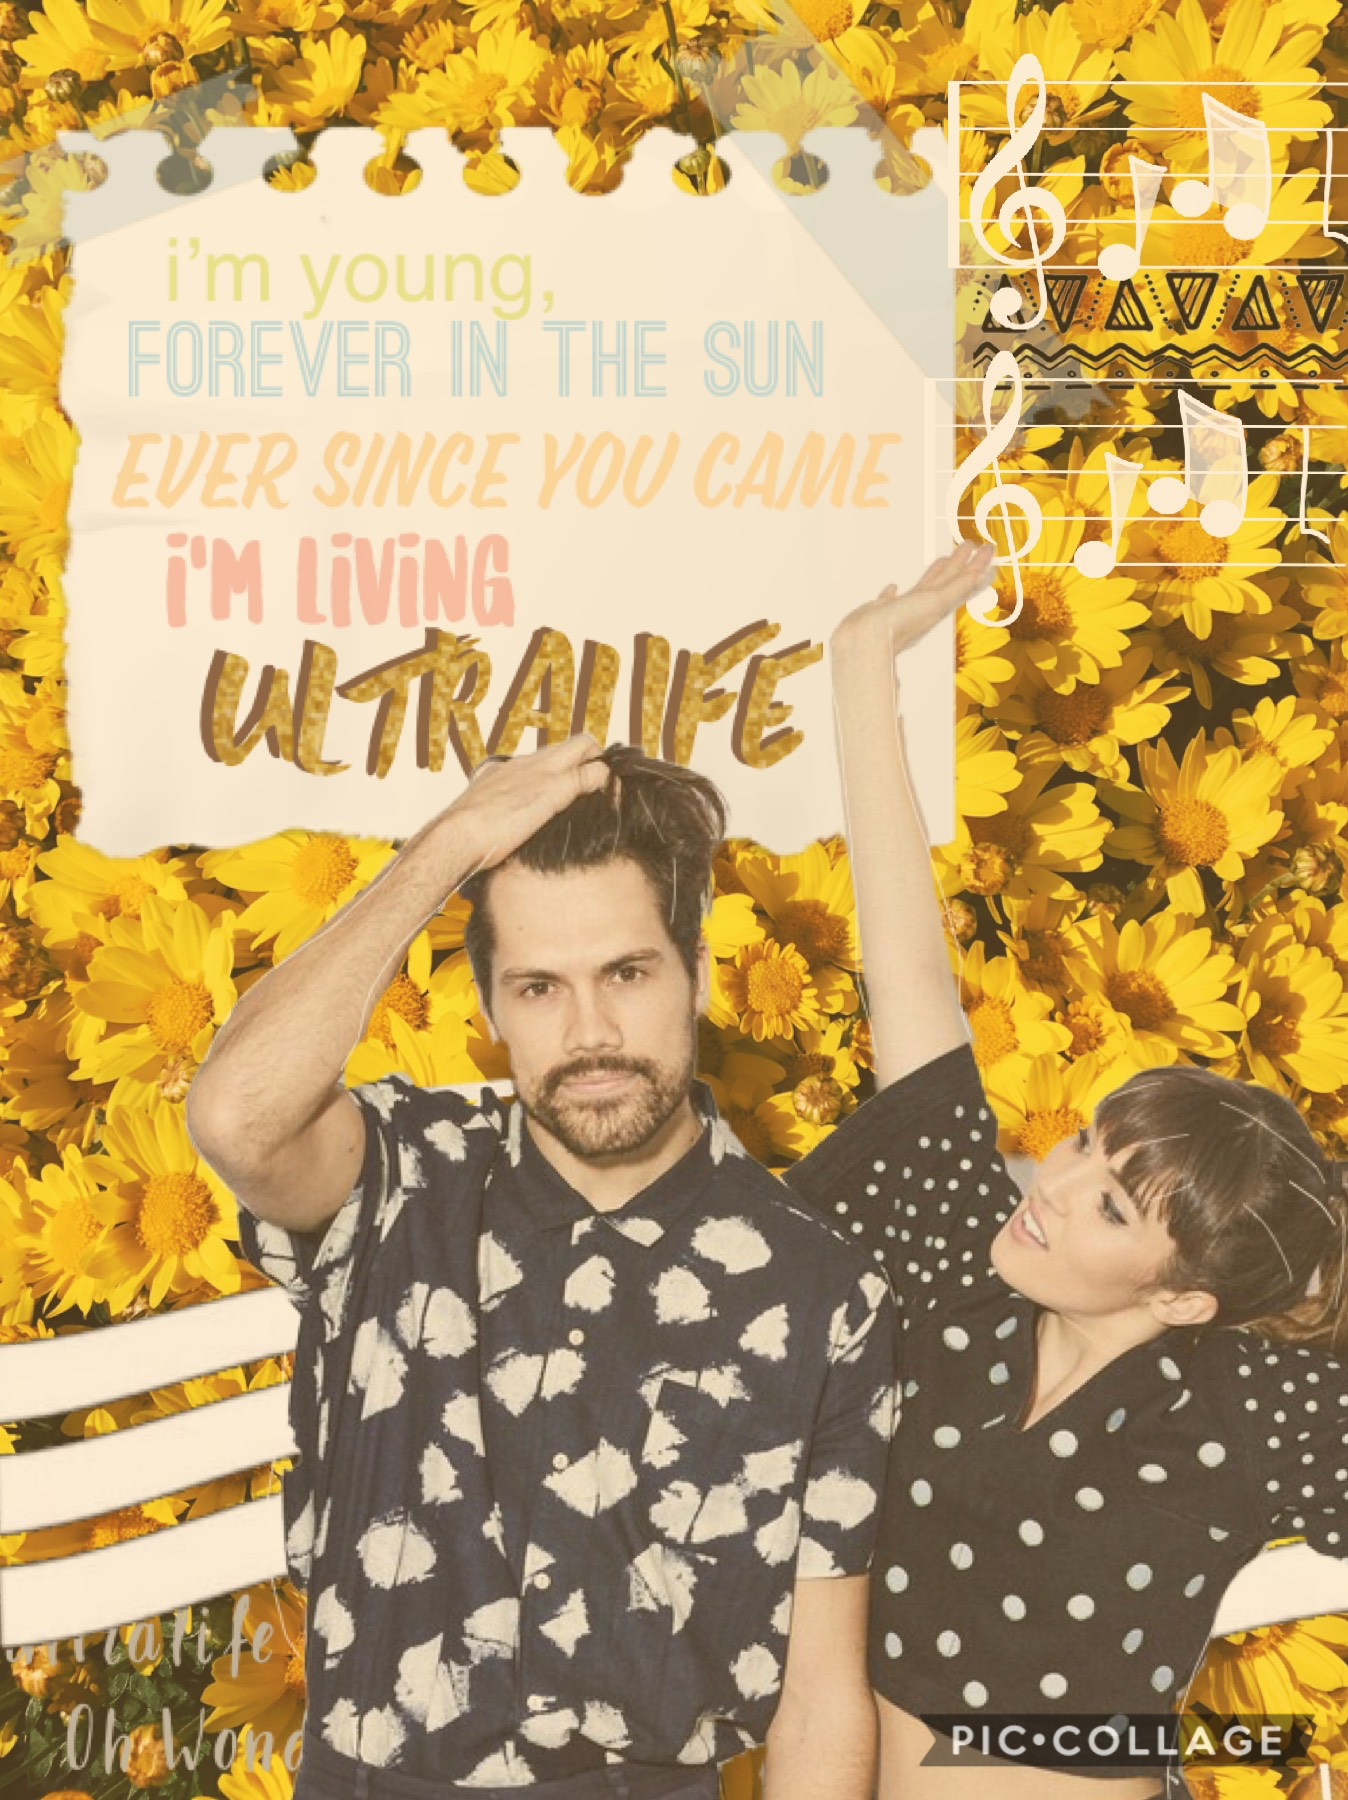 I love this song so much! Ultralife by Oh Wonder!! you should go listen to it if u haven't already! what's your favorite song? 💛